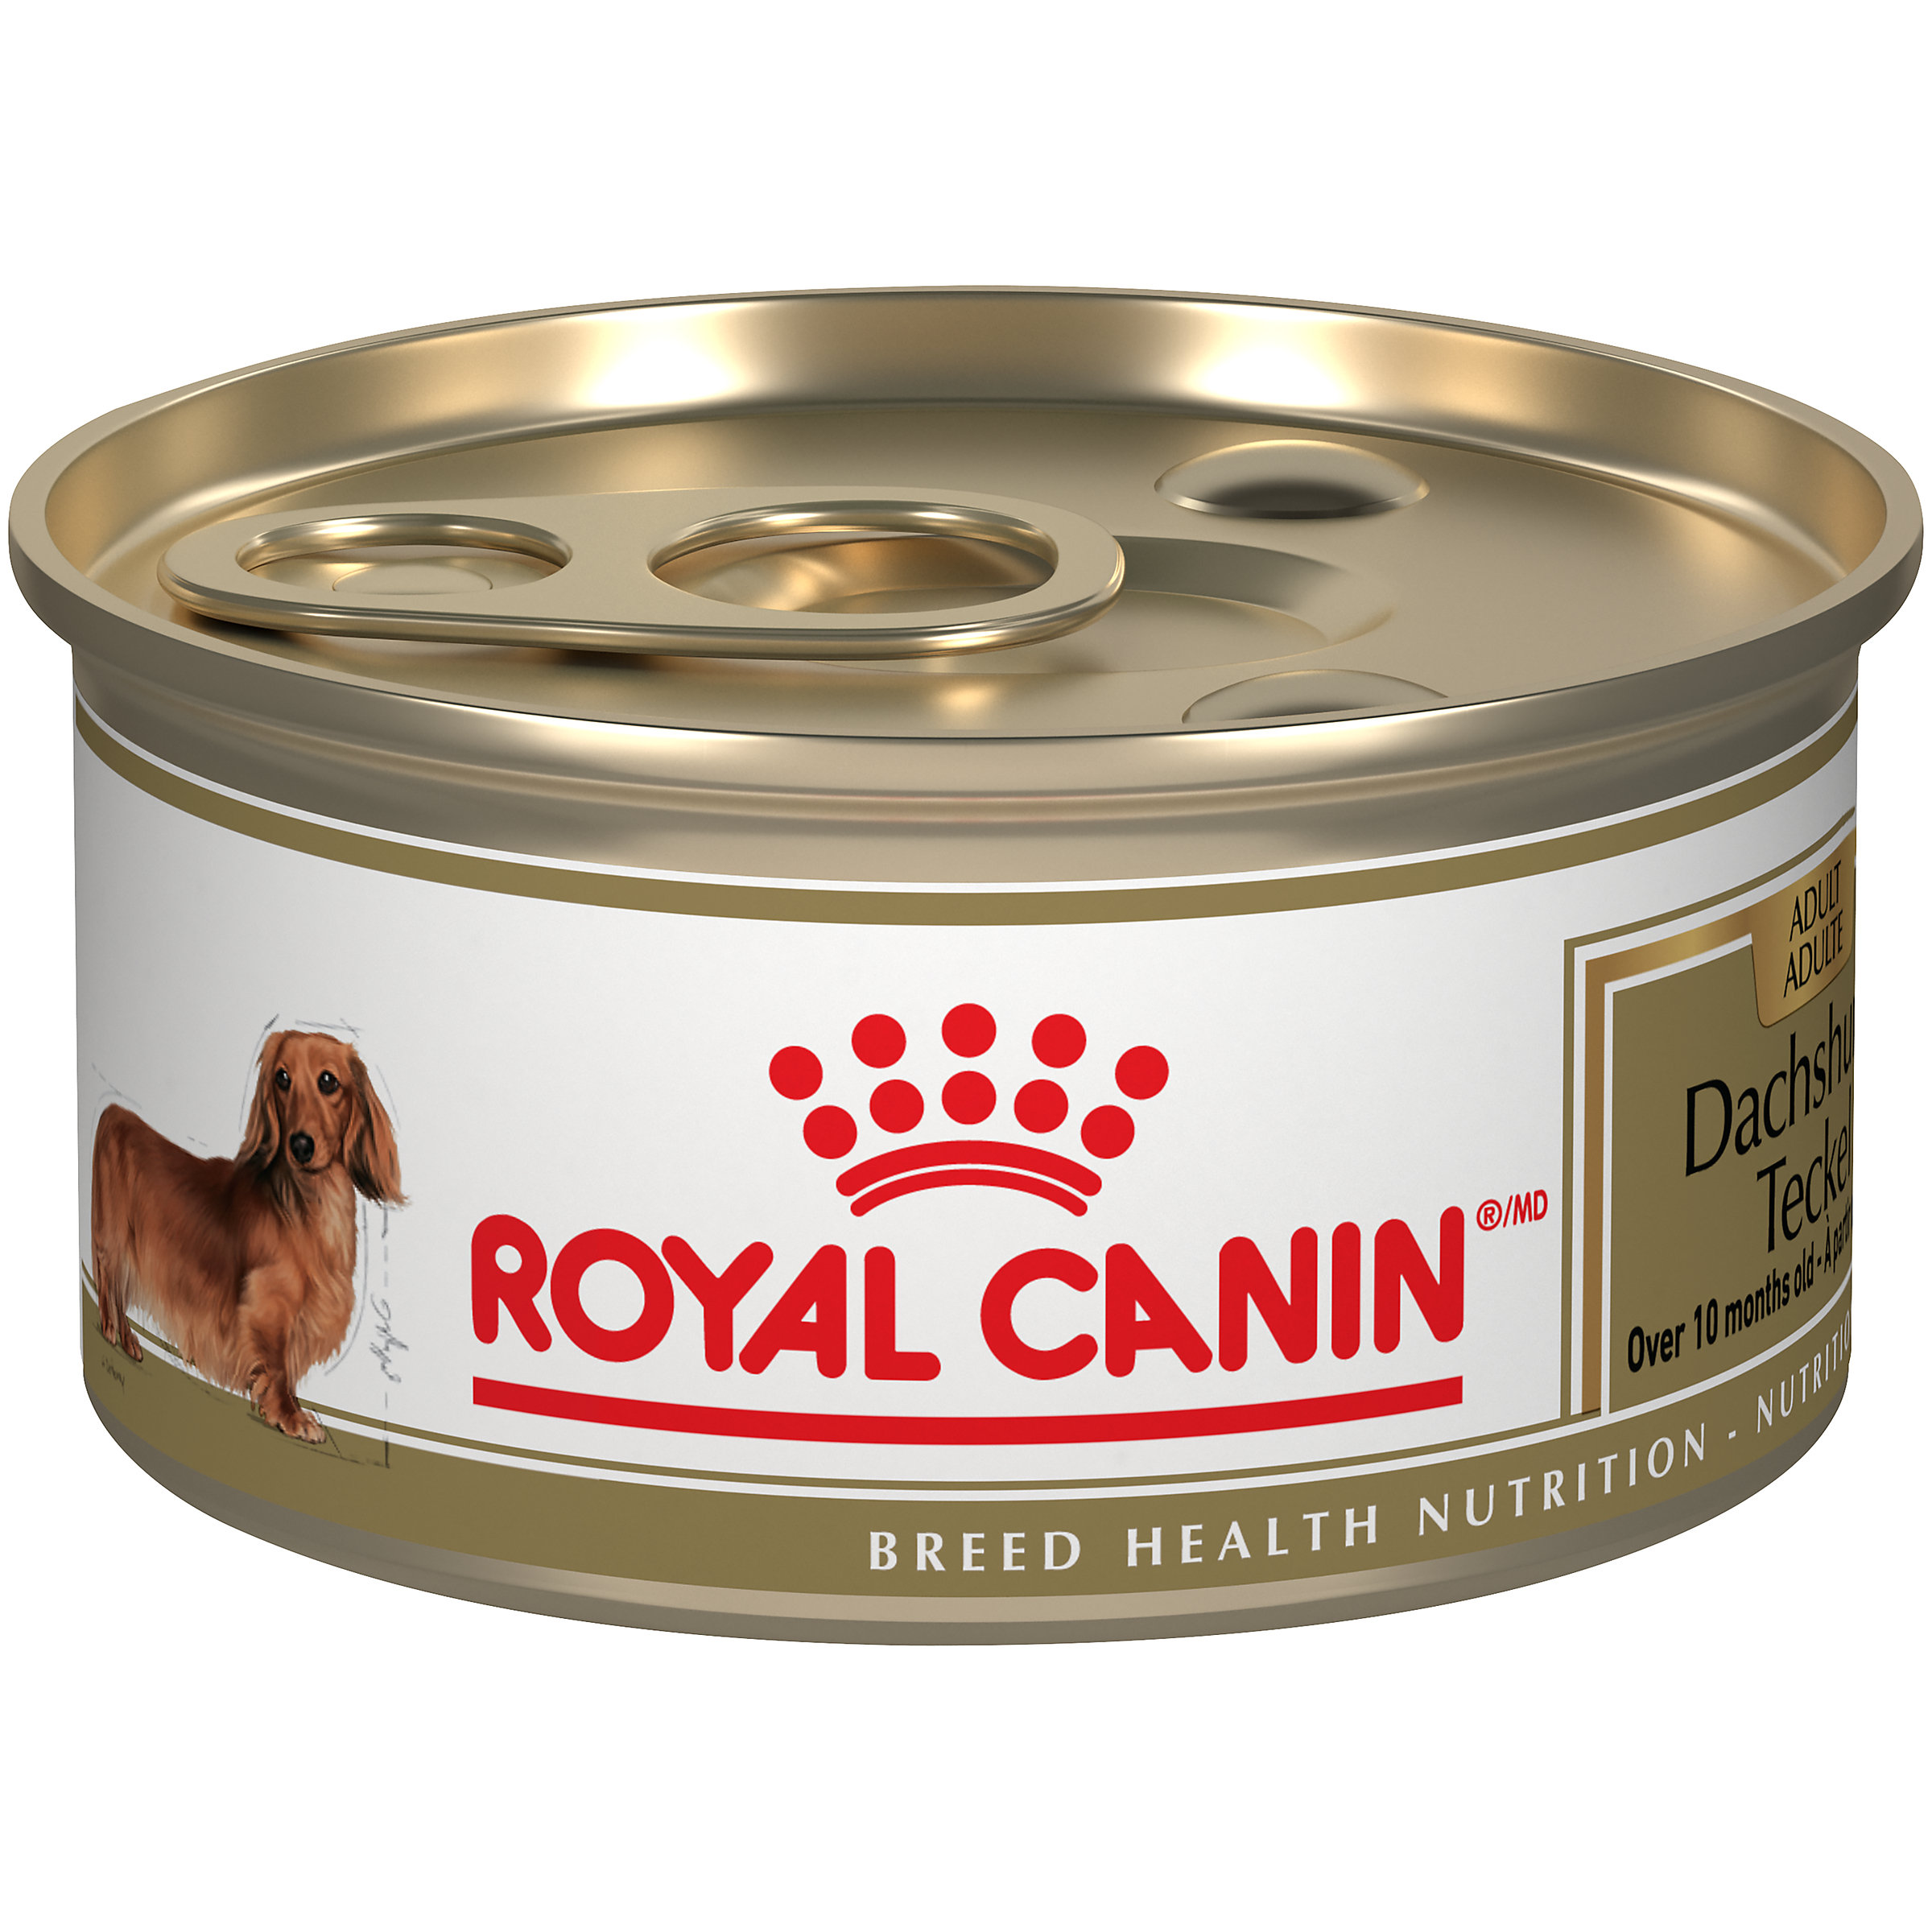 Royal Canin Breed Health Nutrition Dachshund Adult Loaf in Gravy Canned Wet Dog Food, 85-gm